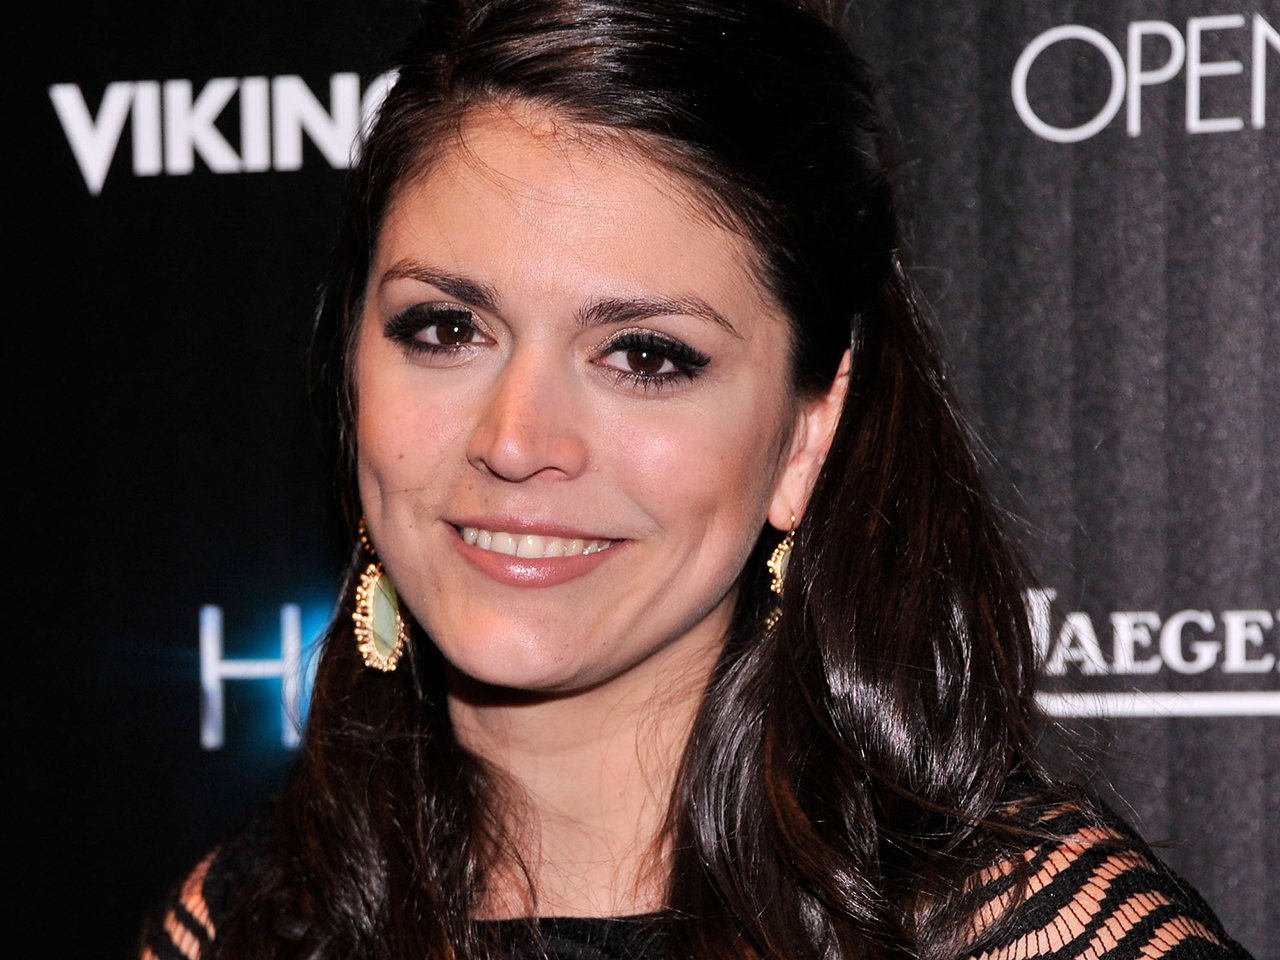 cecily strong snlcecily strong snl, cecily strong boyfriend, cecily strong melania trump, cecily strong imdb, cecily strong parents, cecily strong correspondents dinner speech, cecily strong biography, cecily strong wiki, cecily strong married, cecily strong actress, cecily strong stand up, cecily strong melania, cecily strong italian